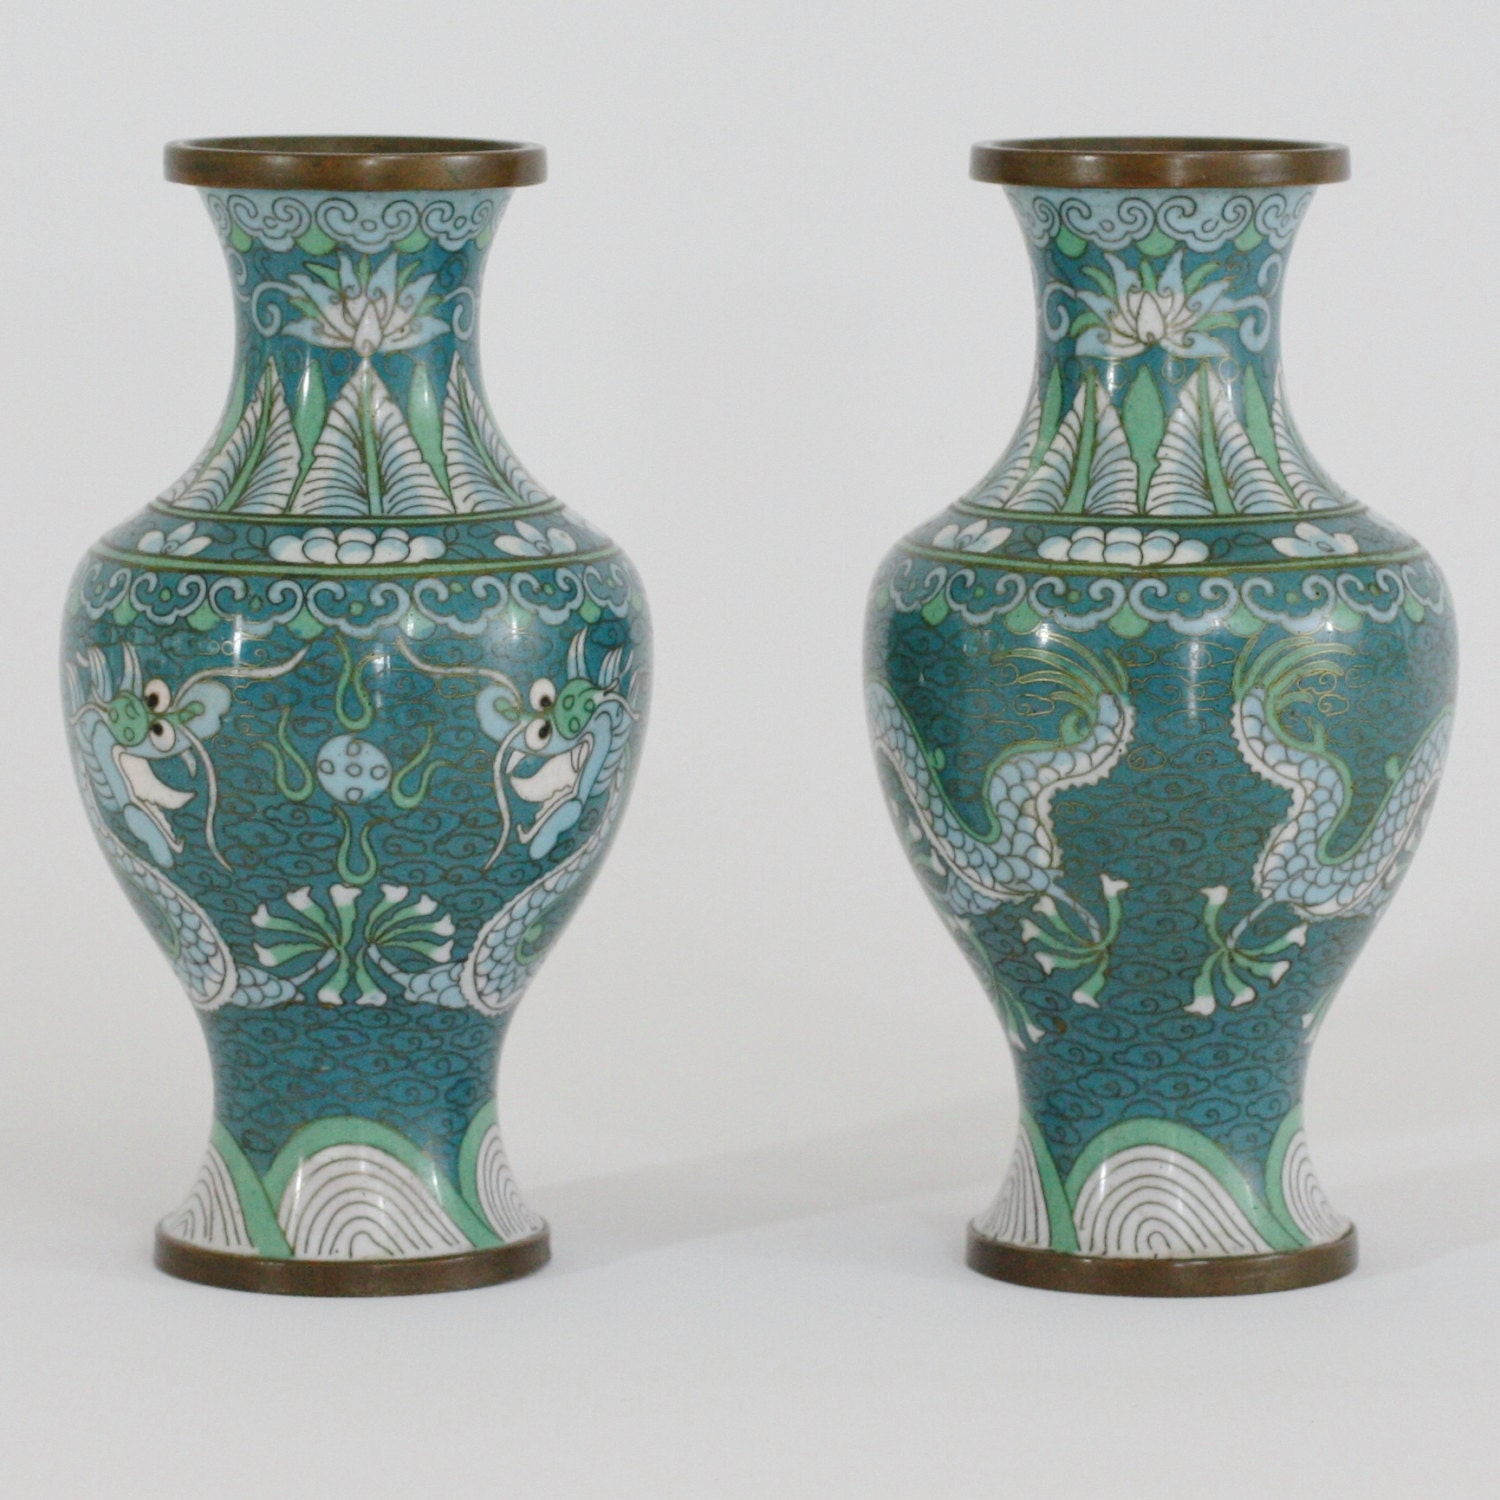 Reserved for cathy metry boyle beautiful pair of chinese reserved for cathy metry boyle beautiful pair of chinese cloisonne enameled vases with dragons pursuing flaming pearls of wisdom in teal b reviewsmspy